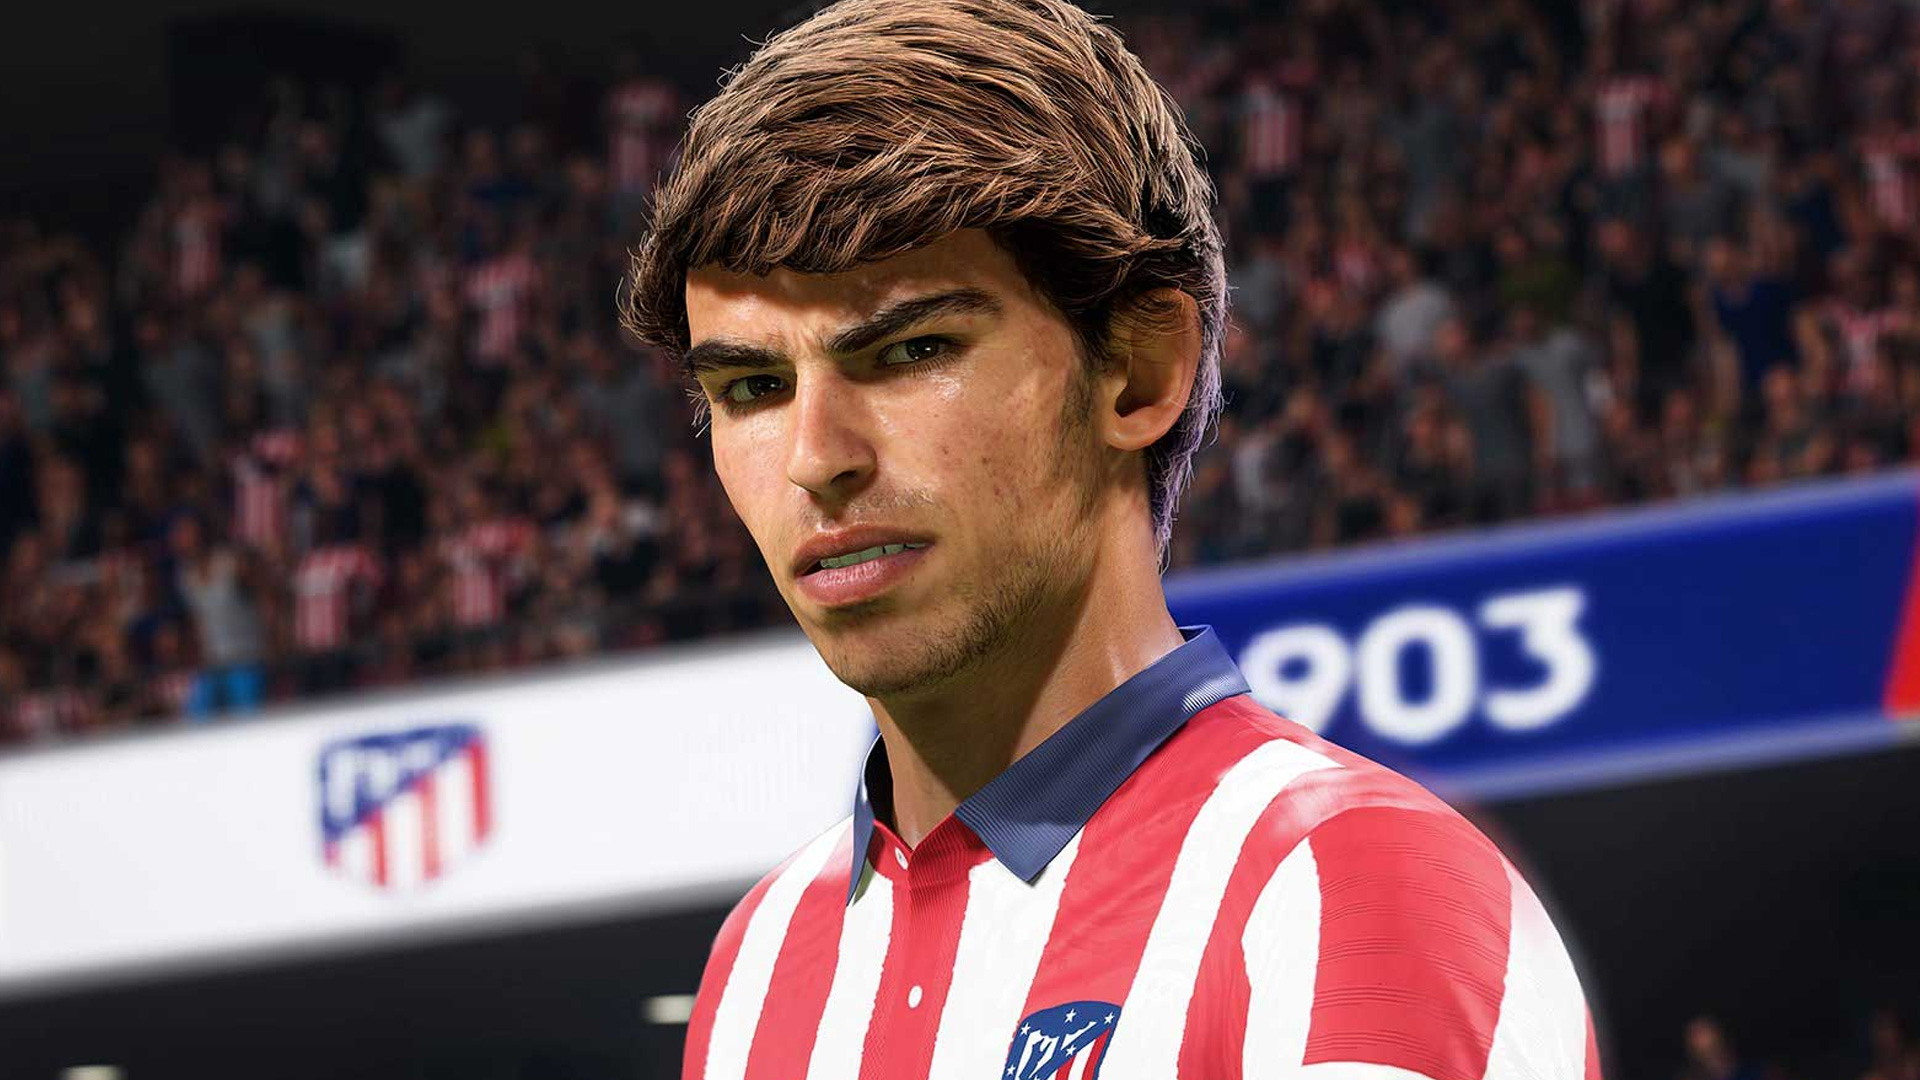 FIFA 22 early access, demo, and everything we know so far